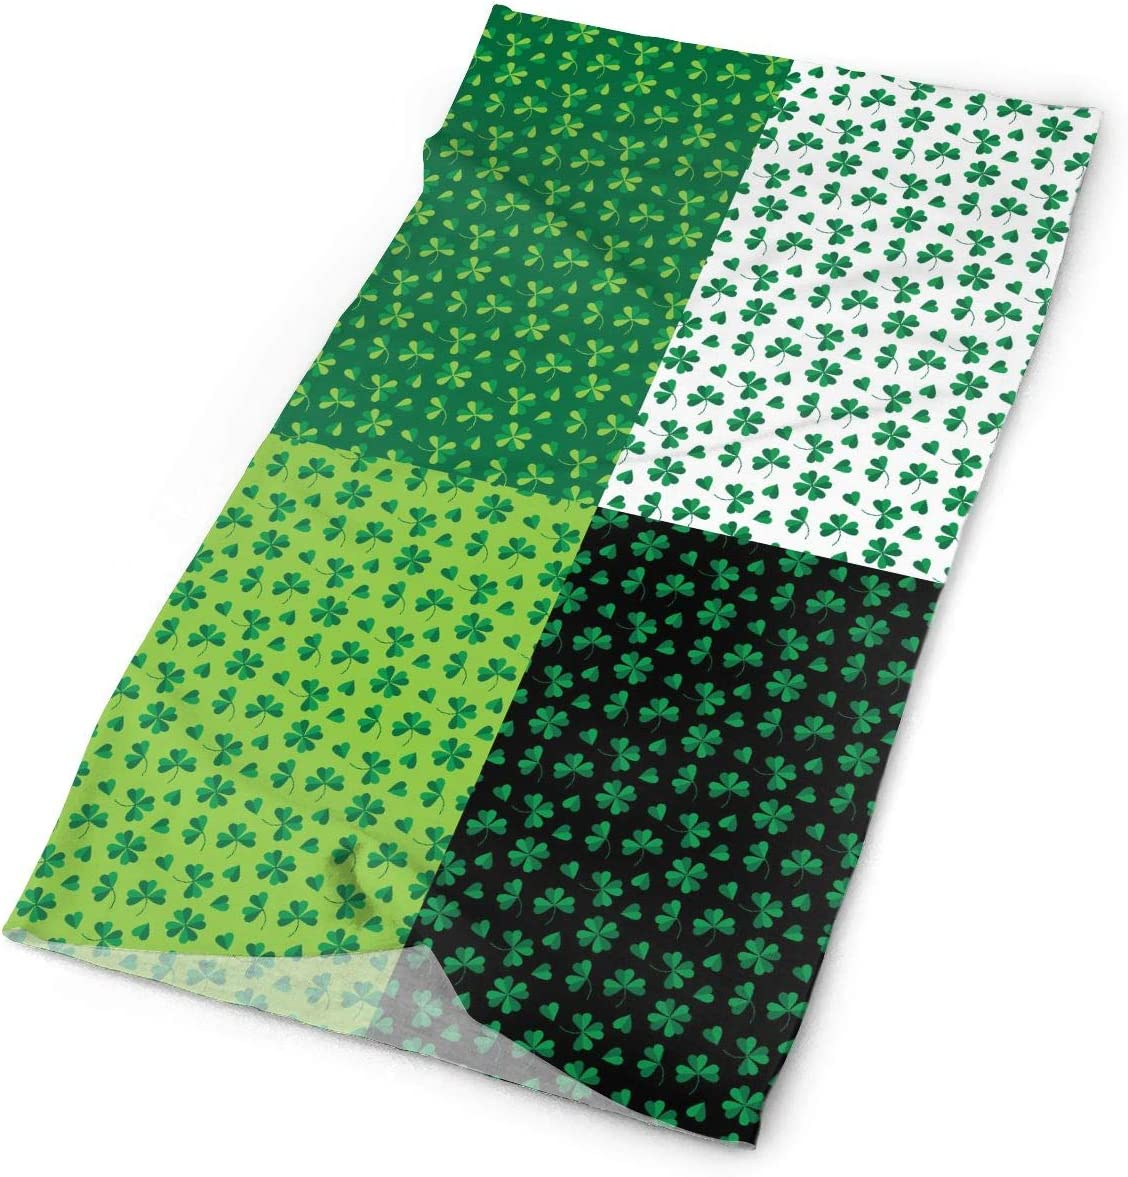 St. Patrick's Day Shamrock Unisex Fashion Quick-Drying Microfiber Headdress Outdoor Magic Scarf Neck Neck Scarf Hooded Scarf Super Soft Handle